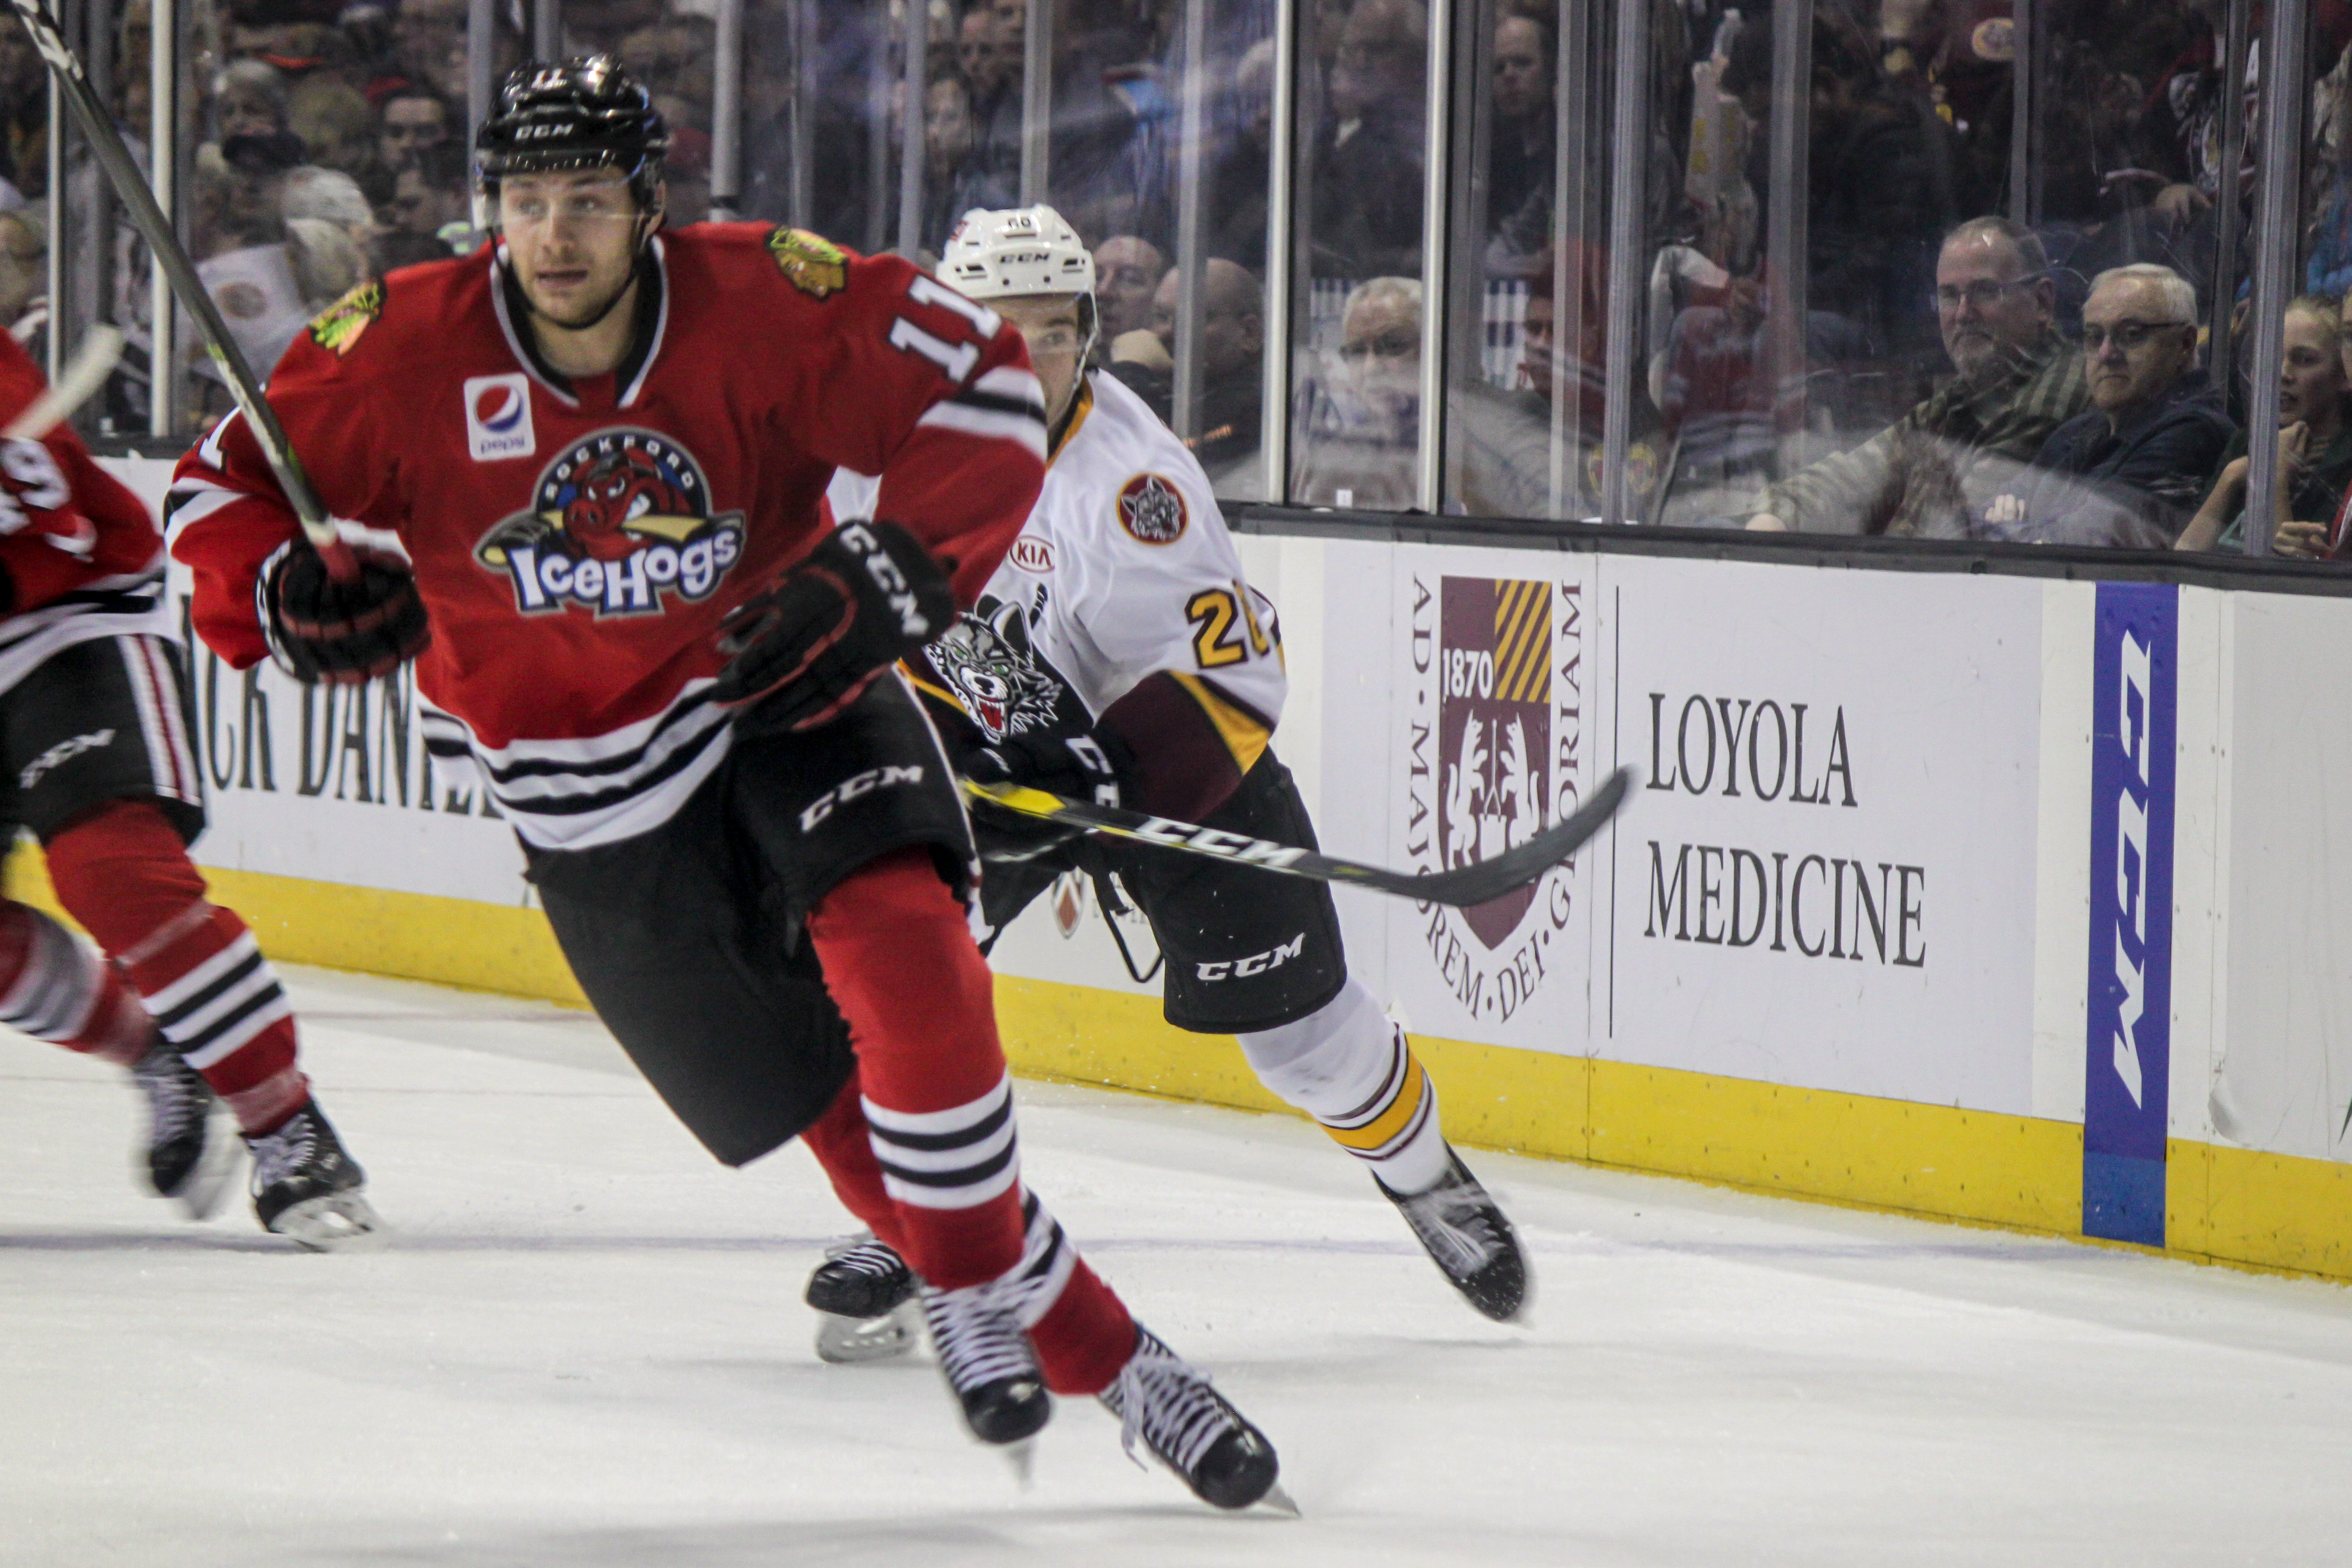 Matheson Iacopelli, Rockford IceHogs forward, plays against the Chicago Wolves; Rosemont, IL, November 10, 2018